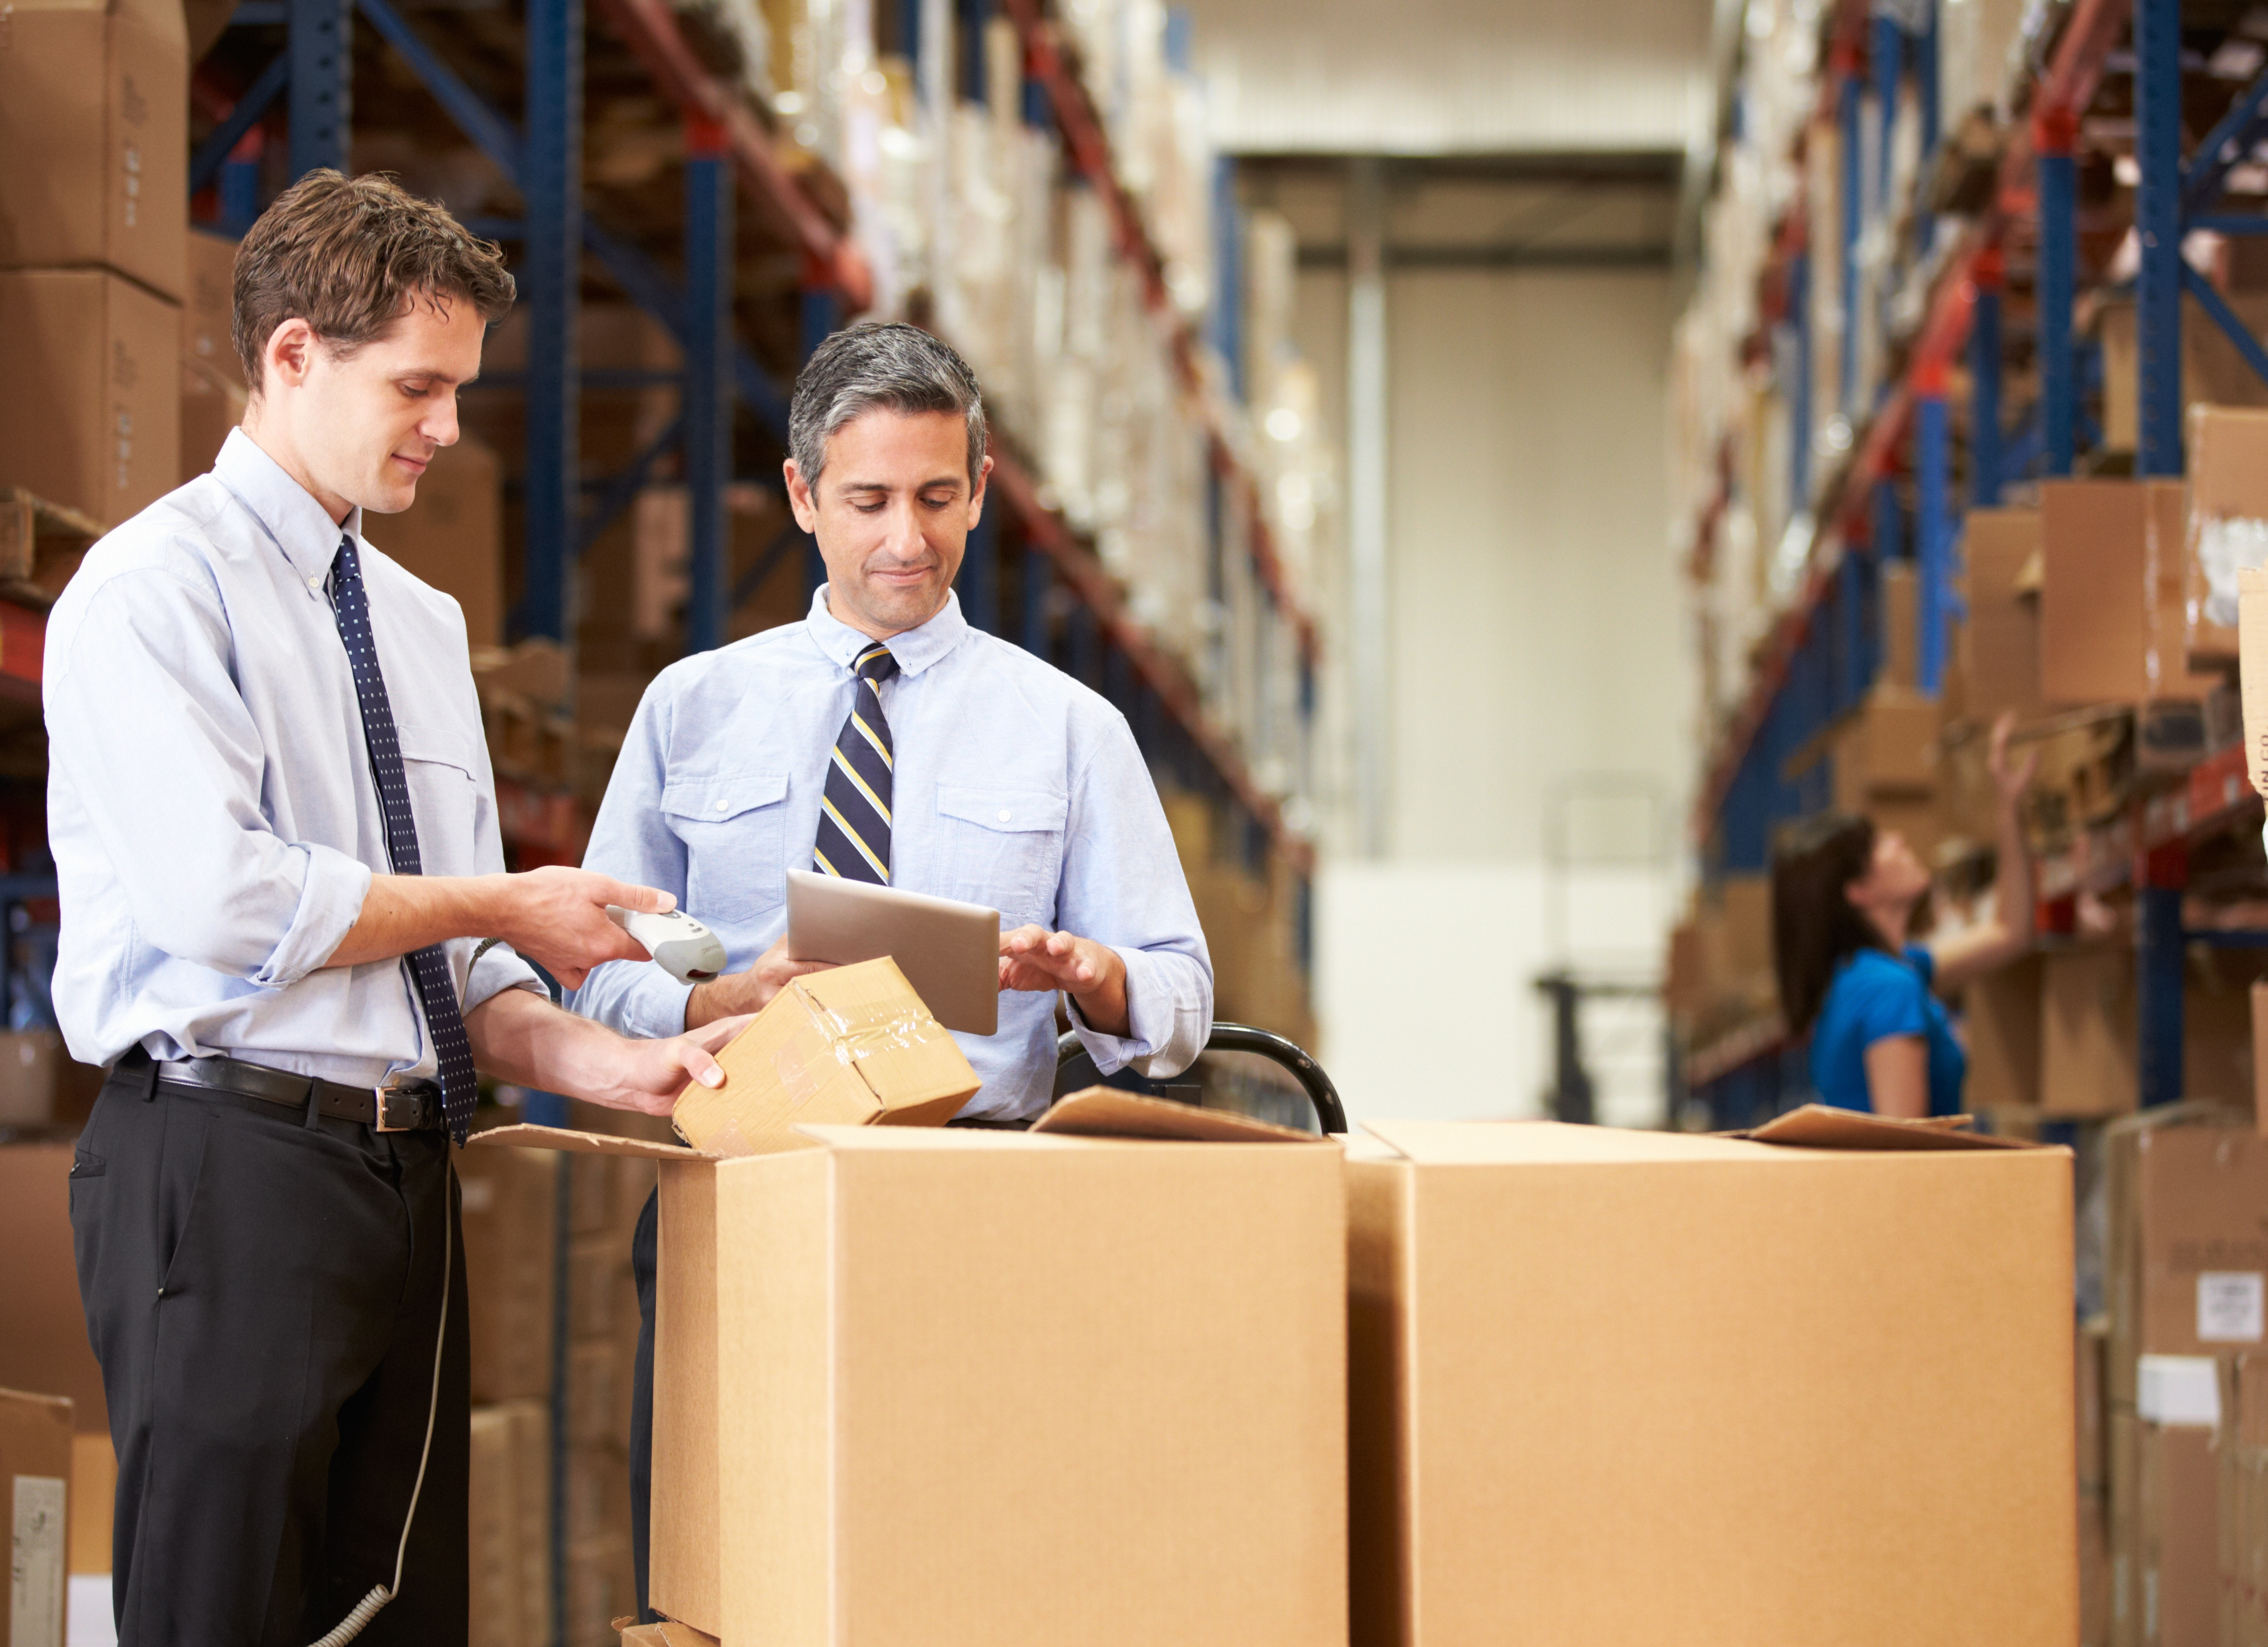 How to Speed Up Order Fulfillment without Compromising Accuracy